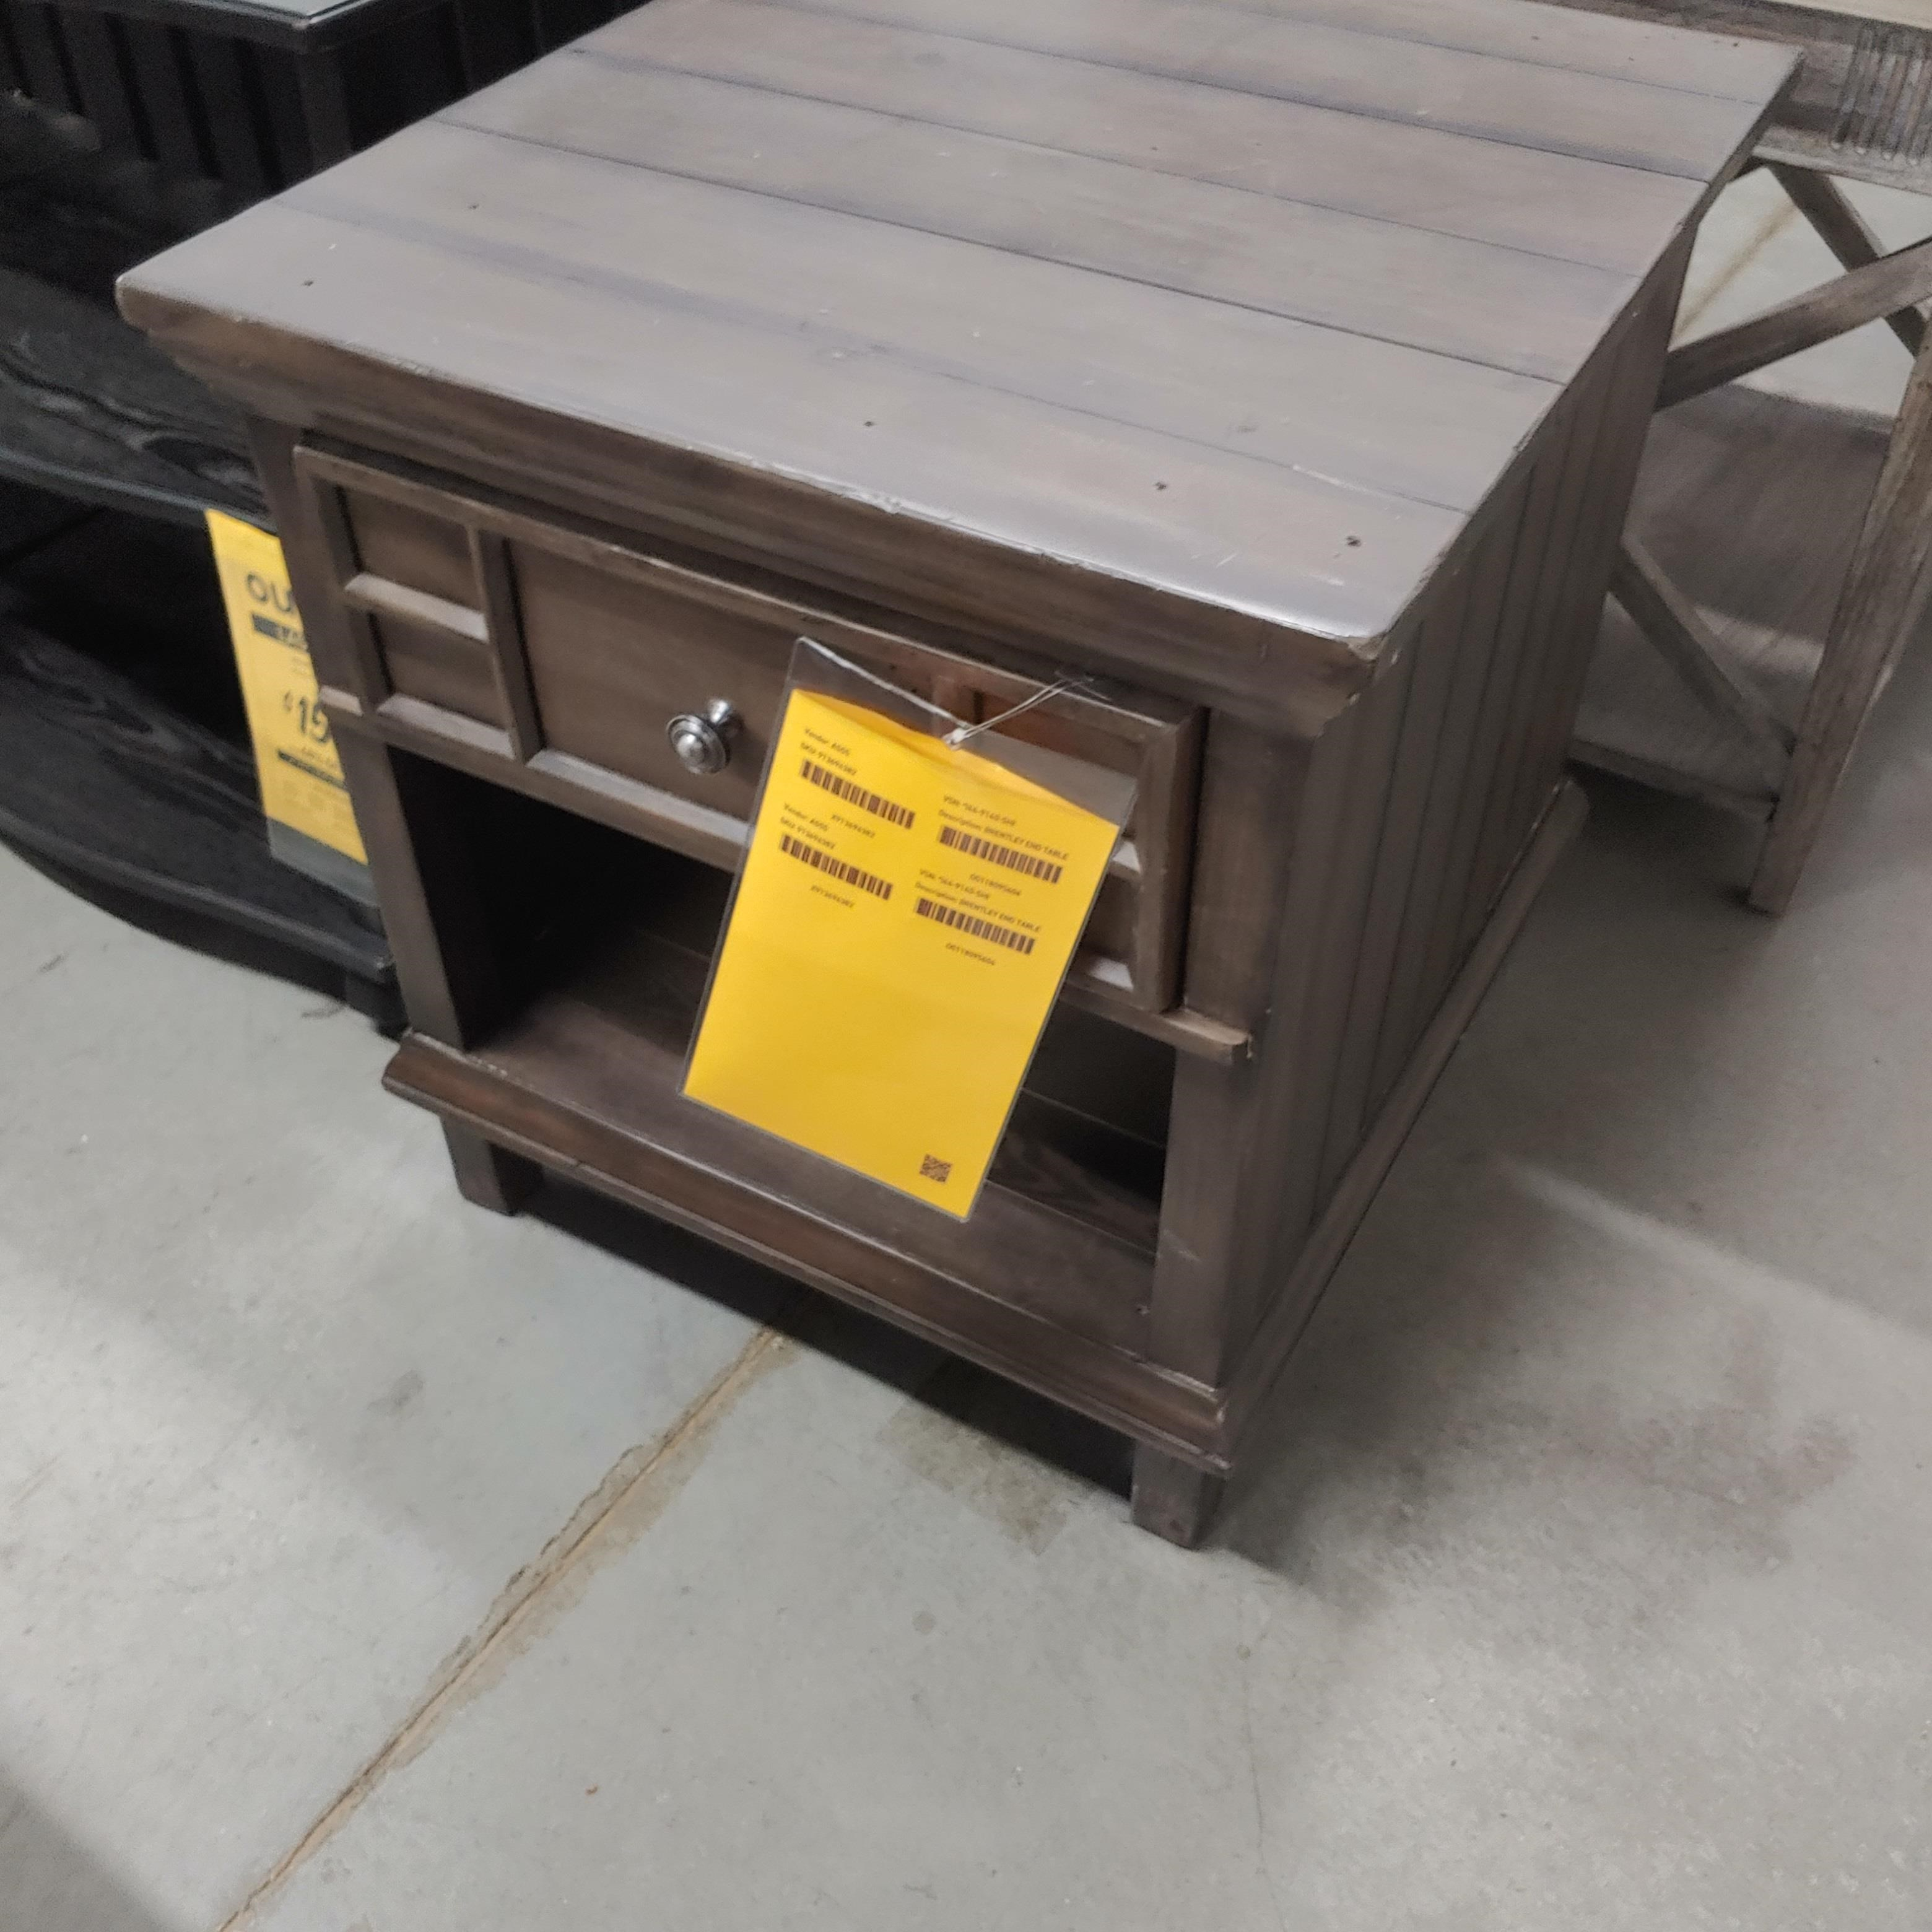 Last One End Table Last One End Table! by Aspenhome at Morris Home